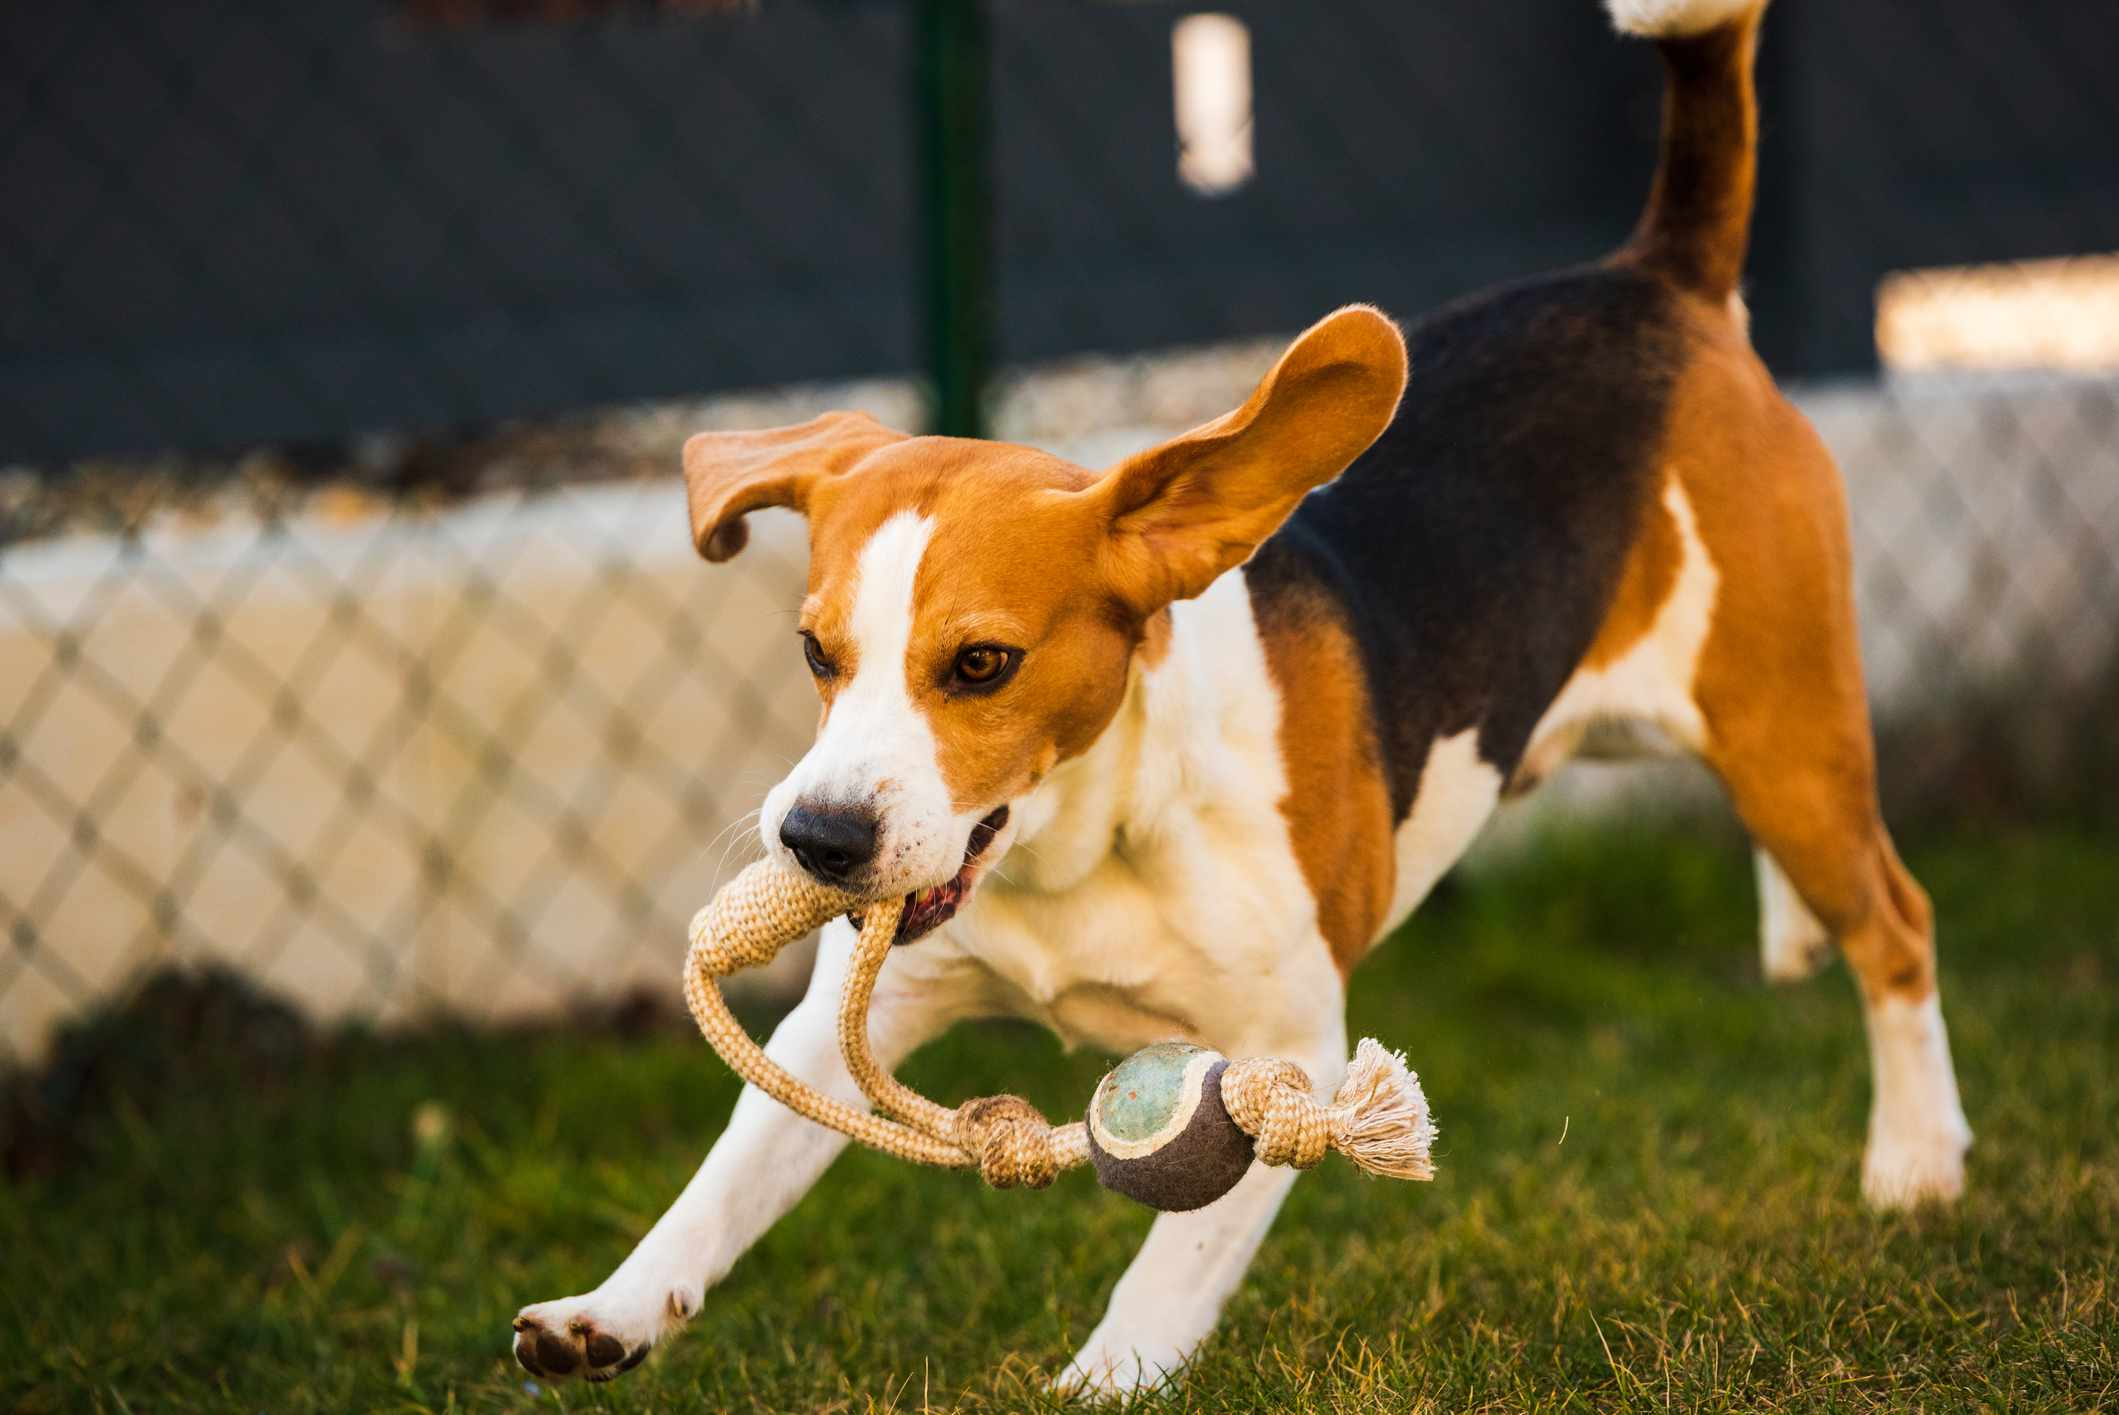 Beagle running with rope toy in mouth, long ears flapping behind.